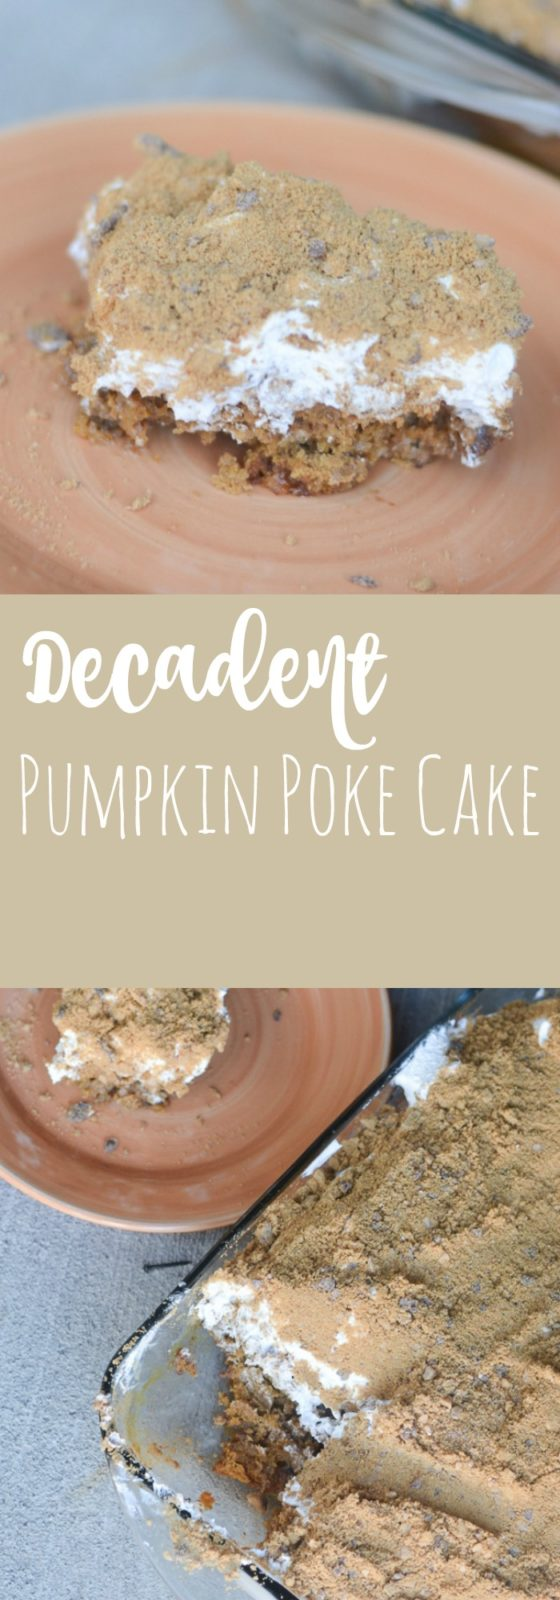 A rich, decadent butterscotch pumpkin poke cake - a delicious fall dessert that can feed a crowd!